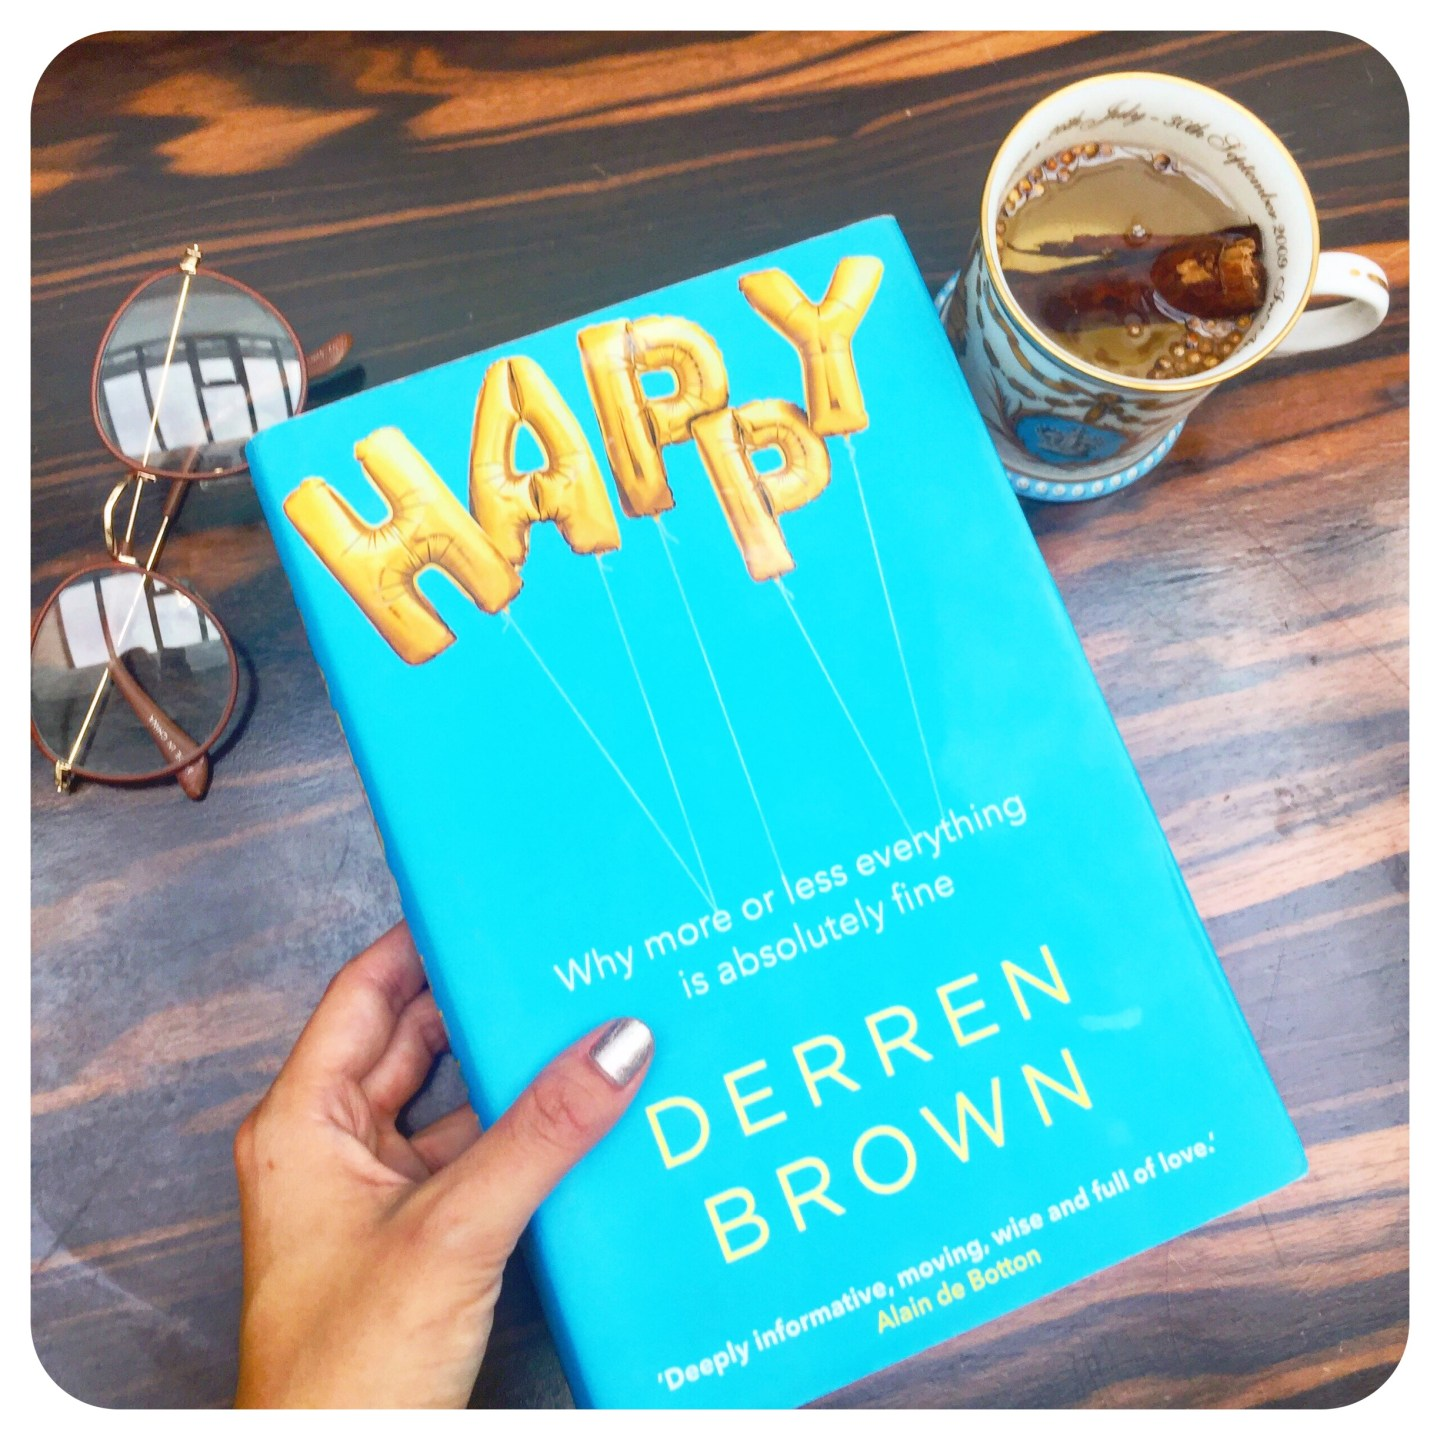 'Happy' by Derren Brown